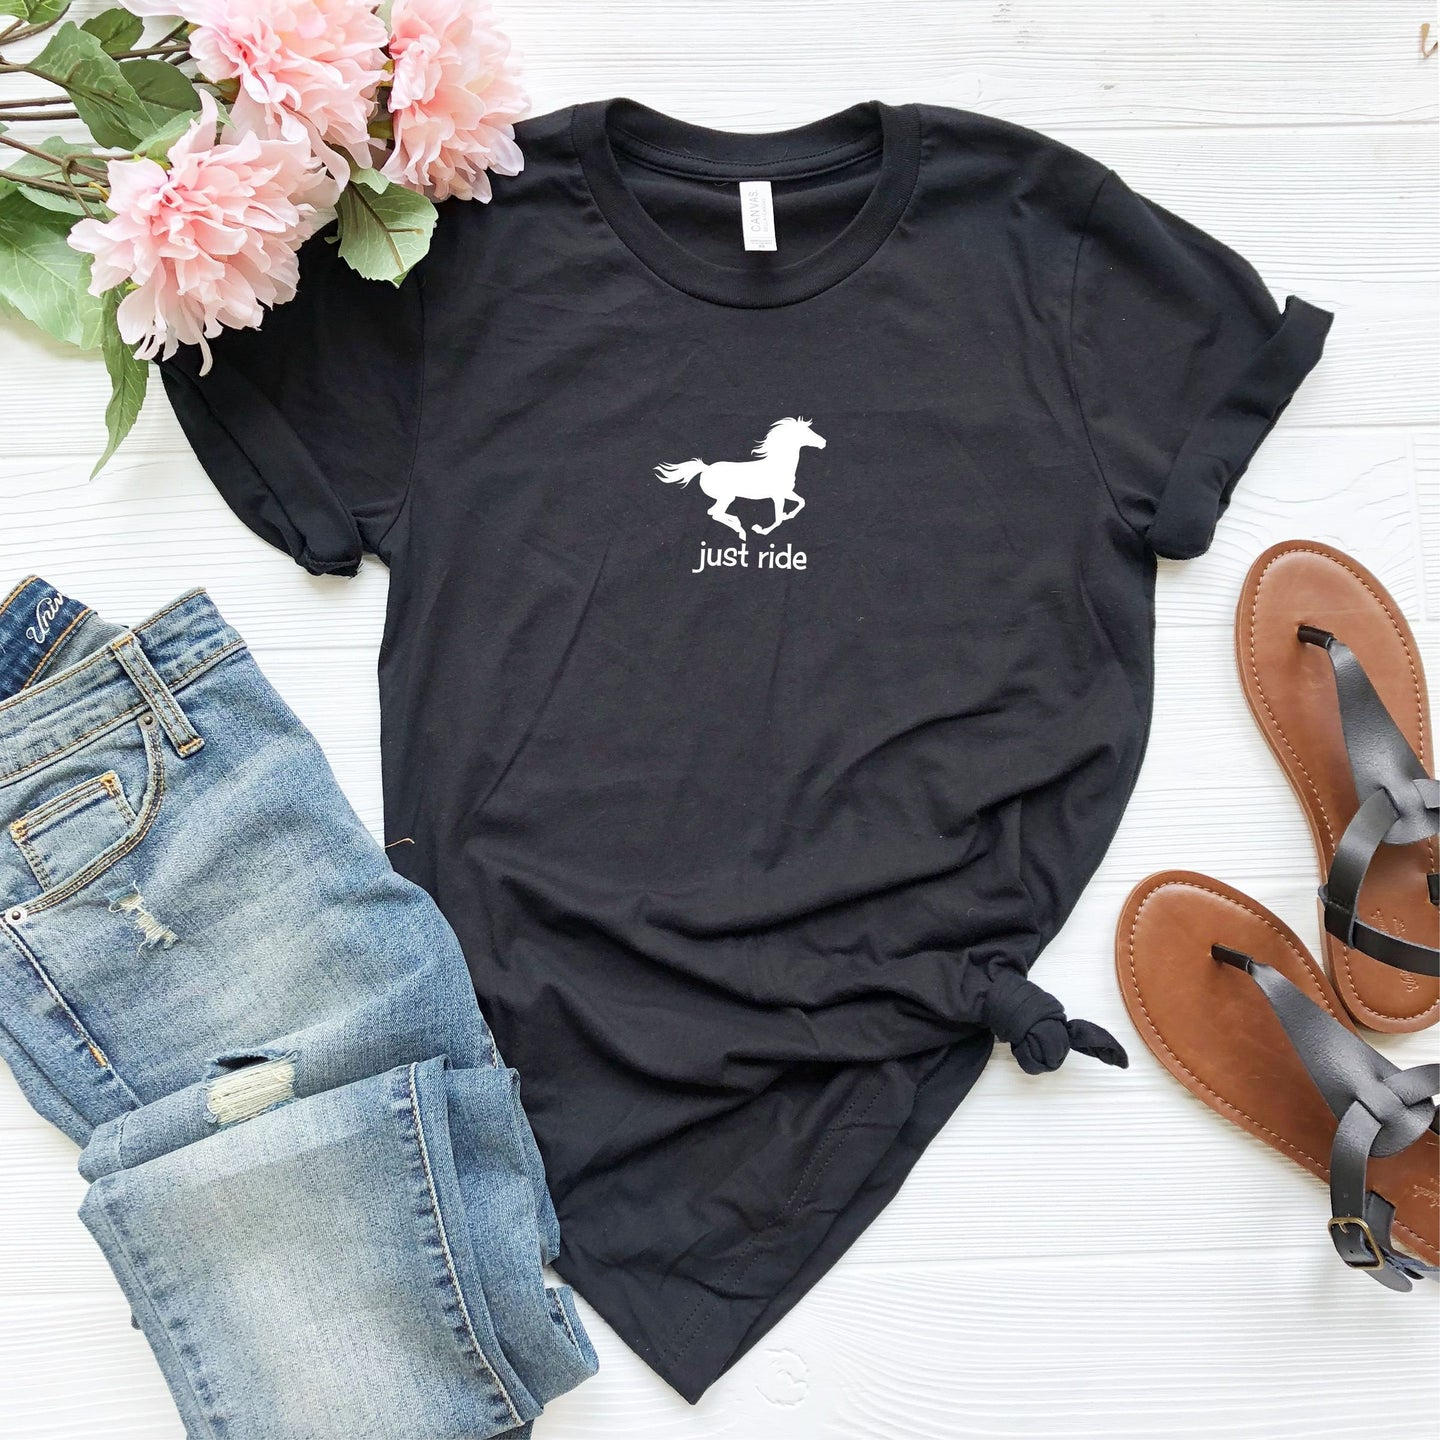 Just Ride Short Sleeve Tshirt